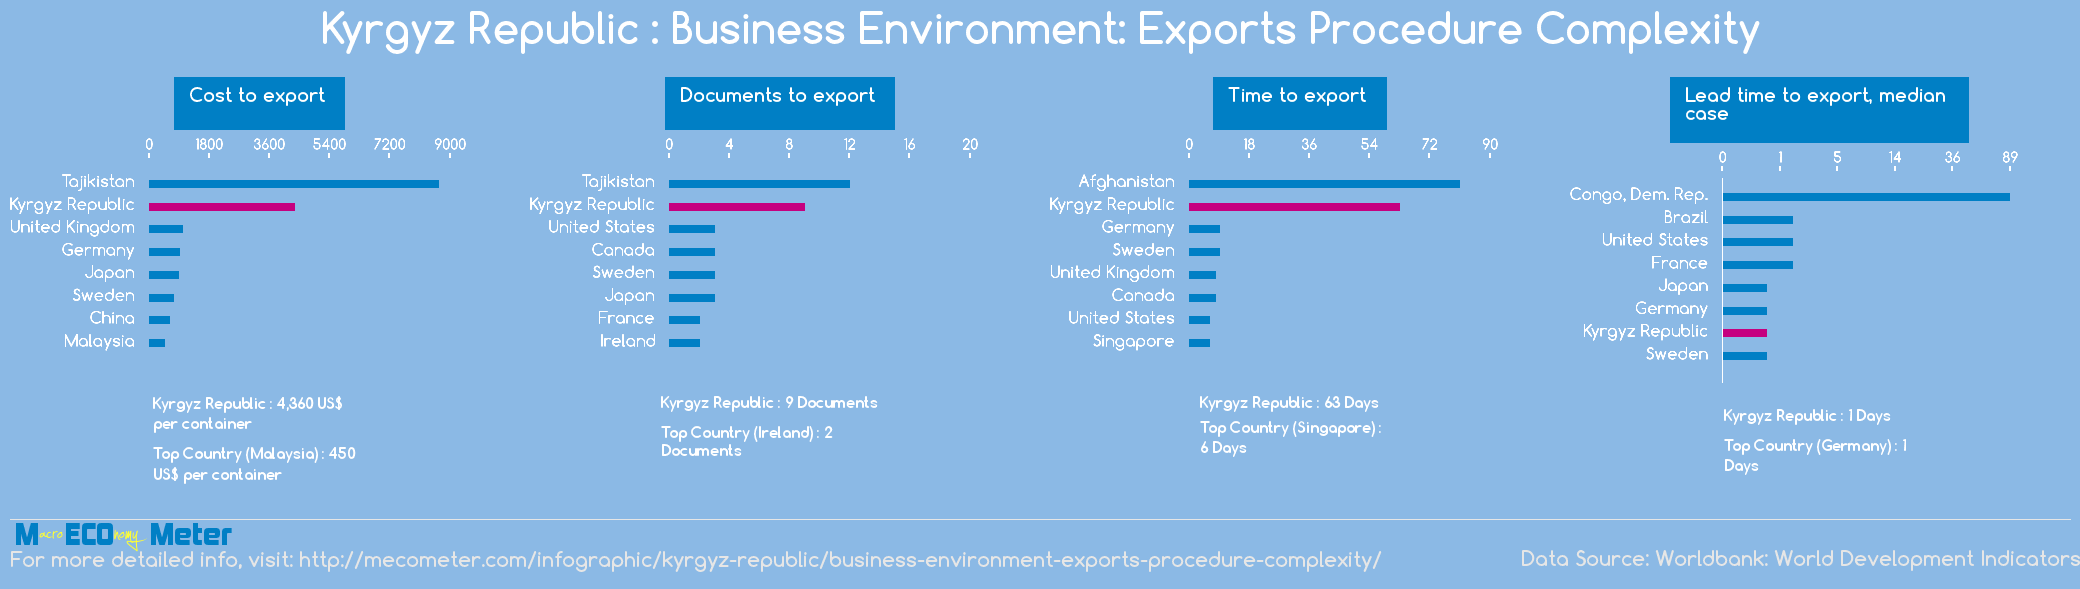 Kyrgyz Republic : Business Environment: Exports Procedure Complexity